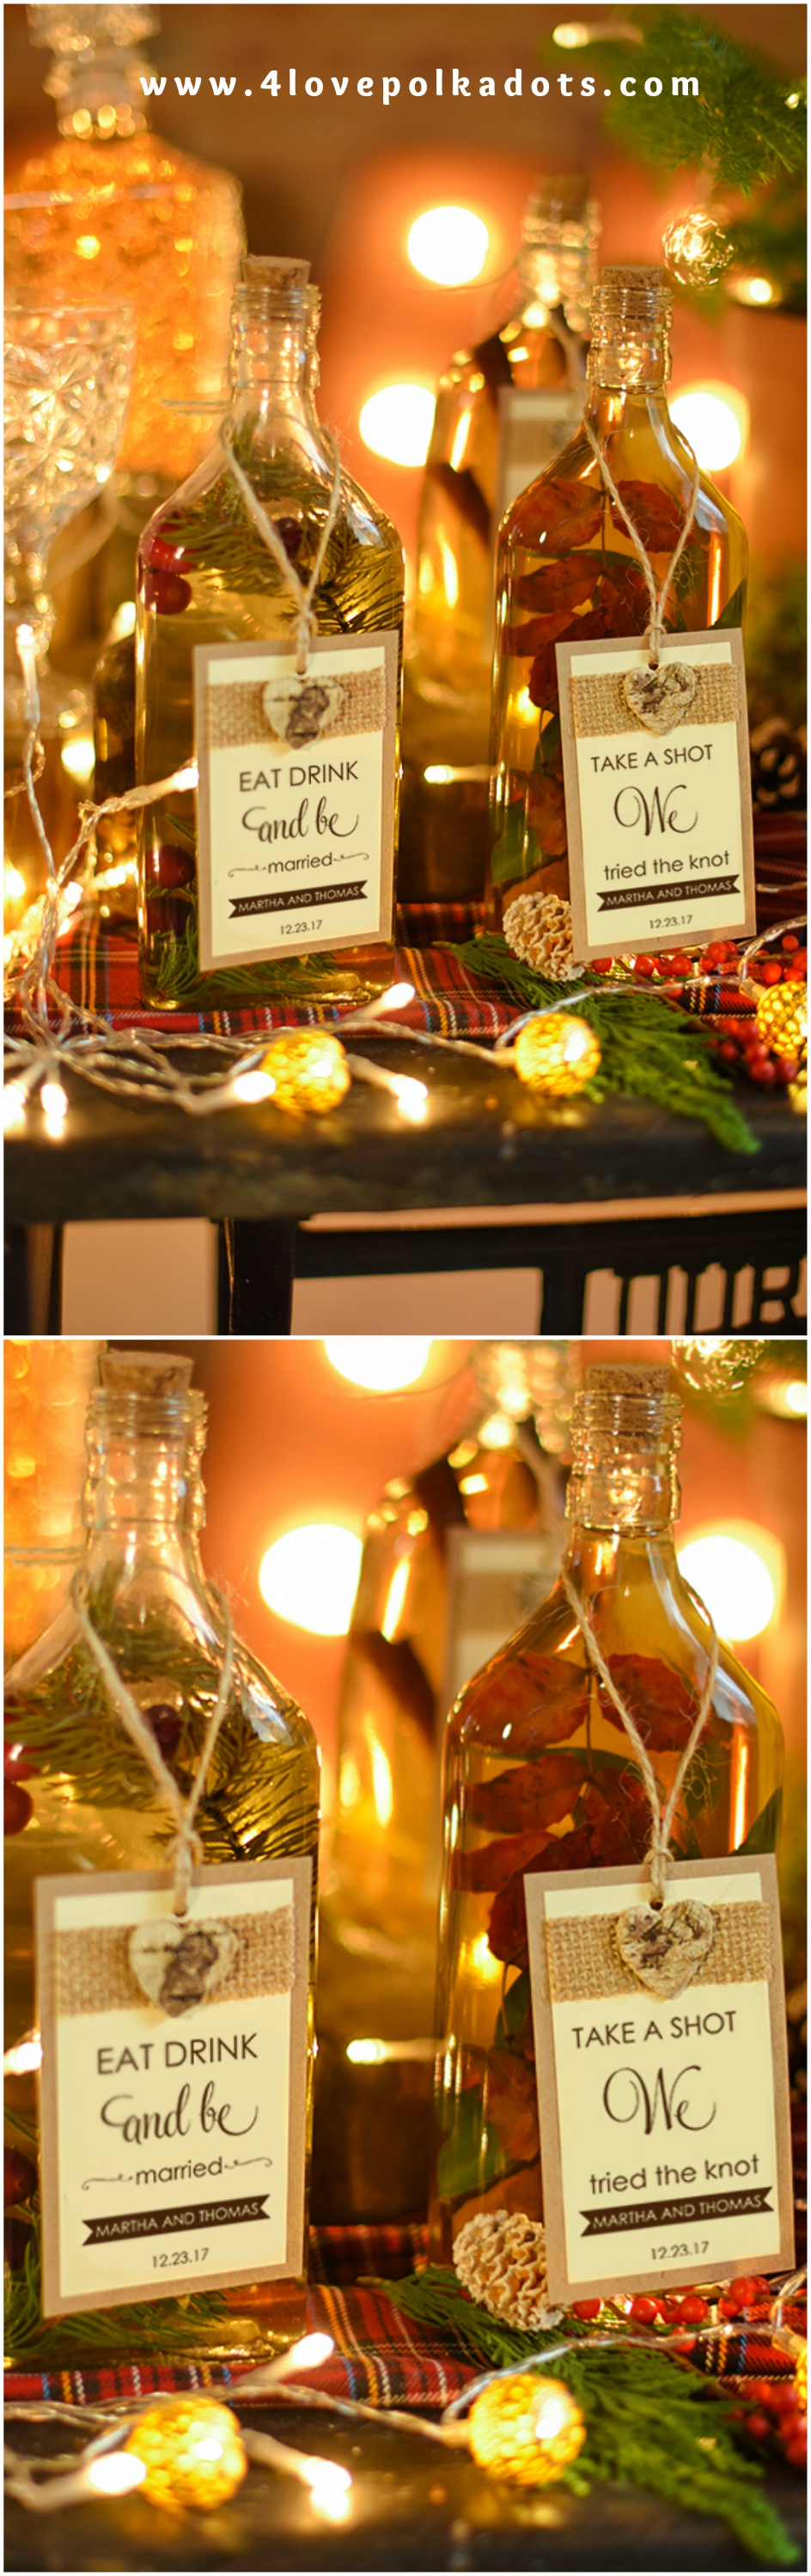 Wine labels rustic | Pinterest | Wedding wine labels, Wedding and ...